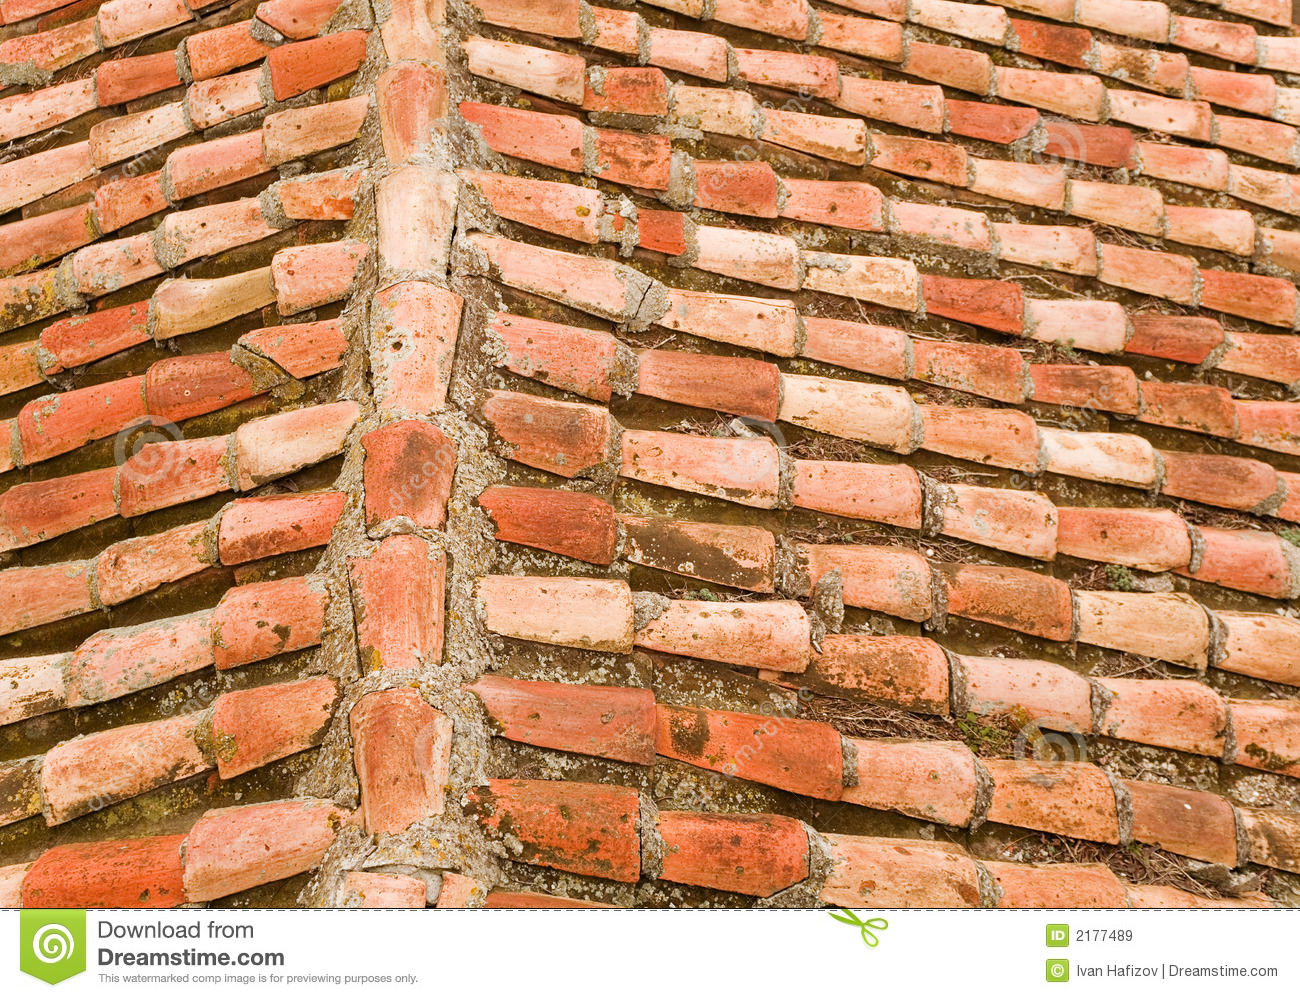 Tile roof stock image  Image of colorful, construction - 2177489